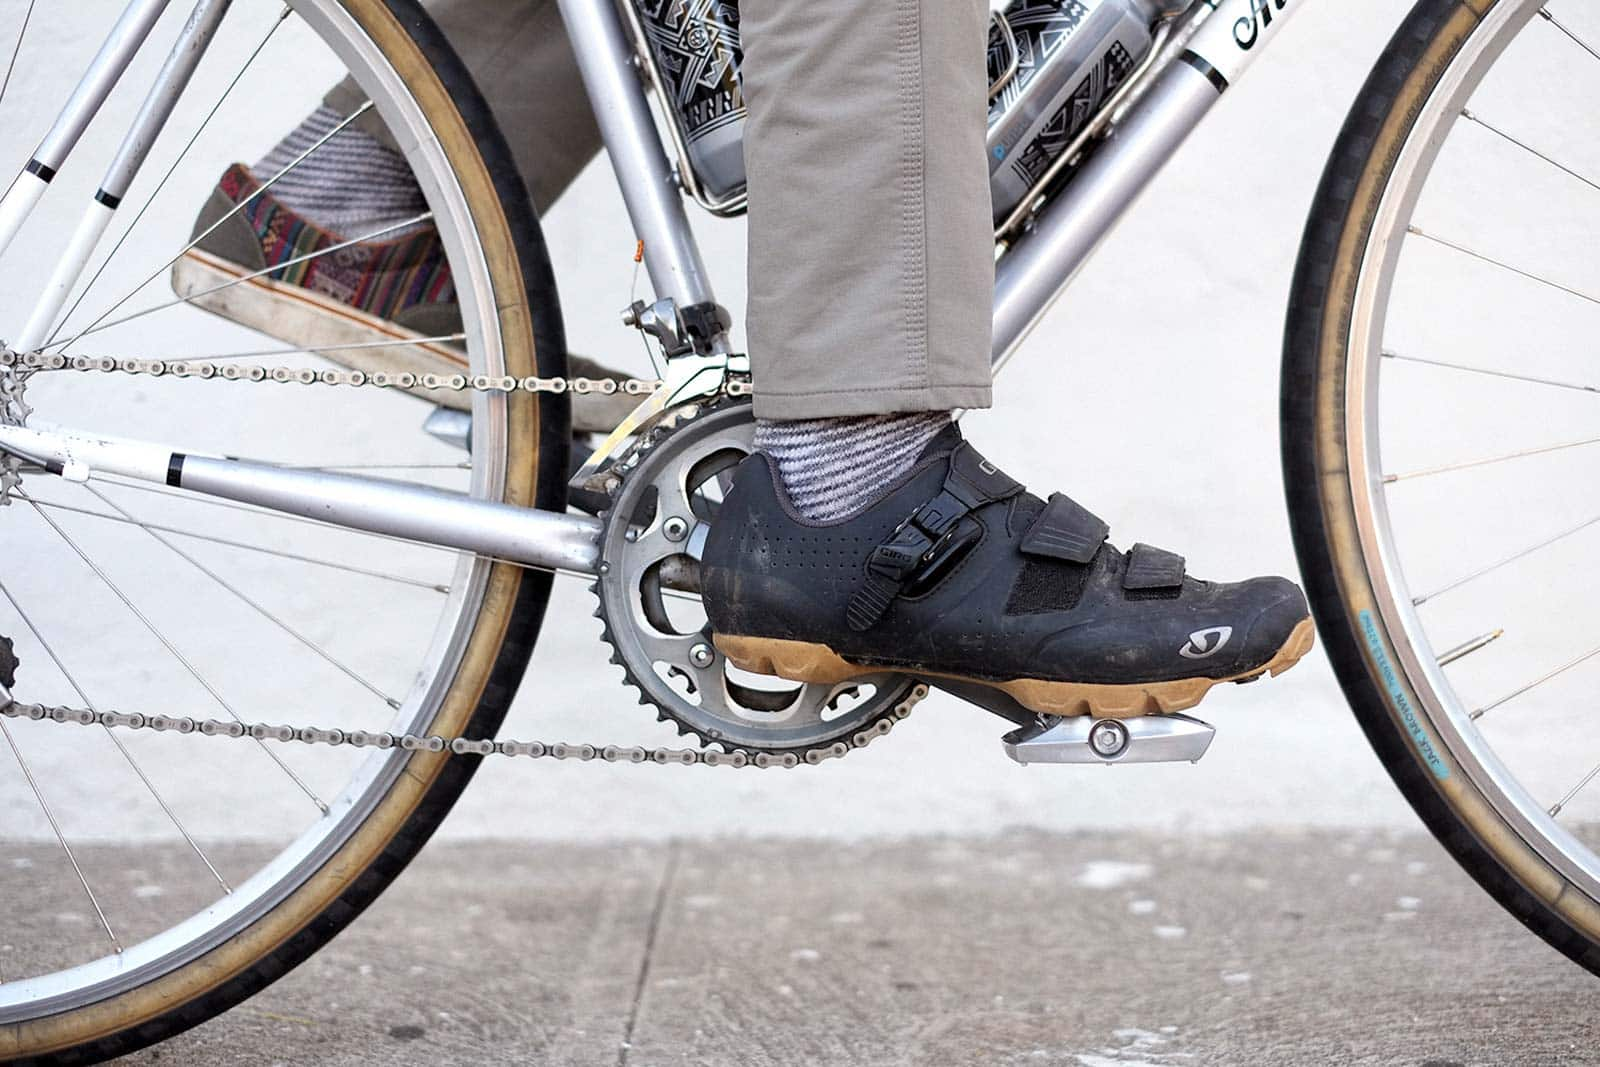 iSSi flip dual purpose pedal on a commuter bike